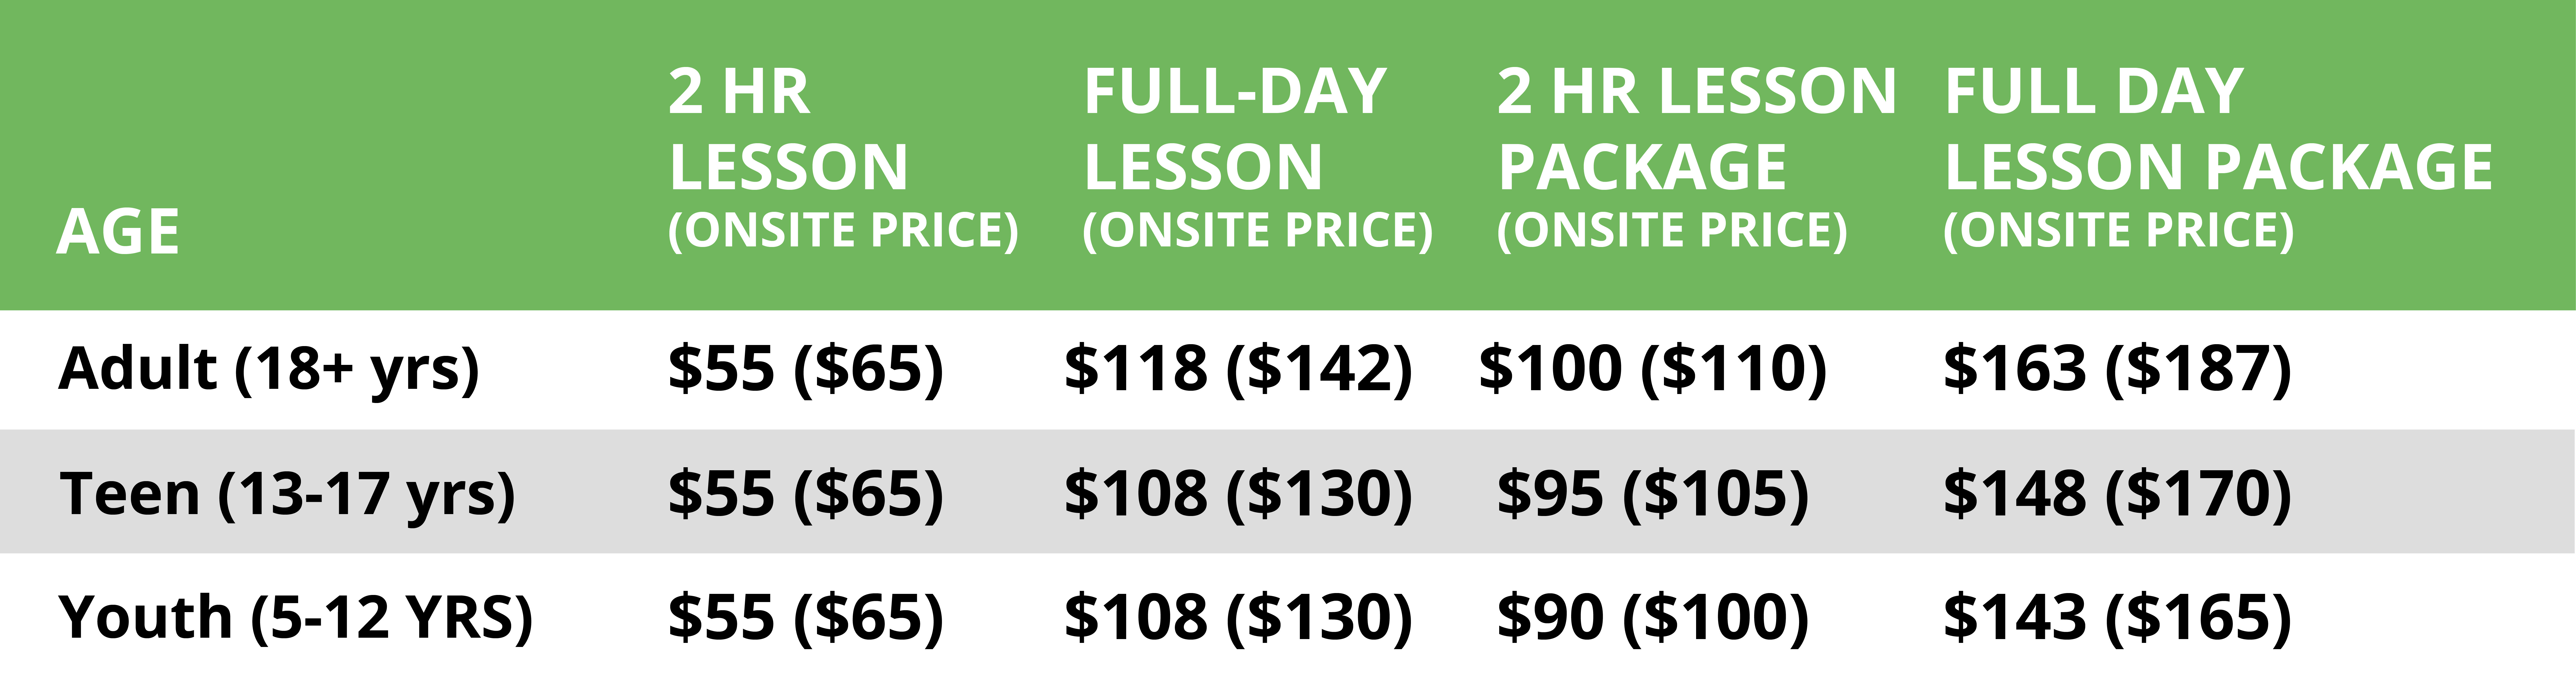 2019/2020 Group Lesson Pricing